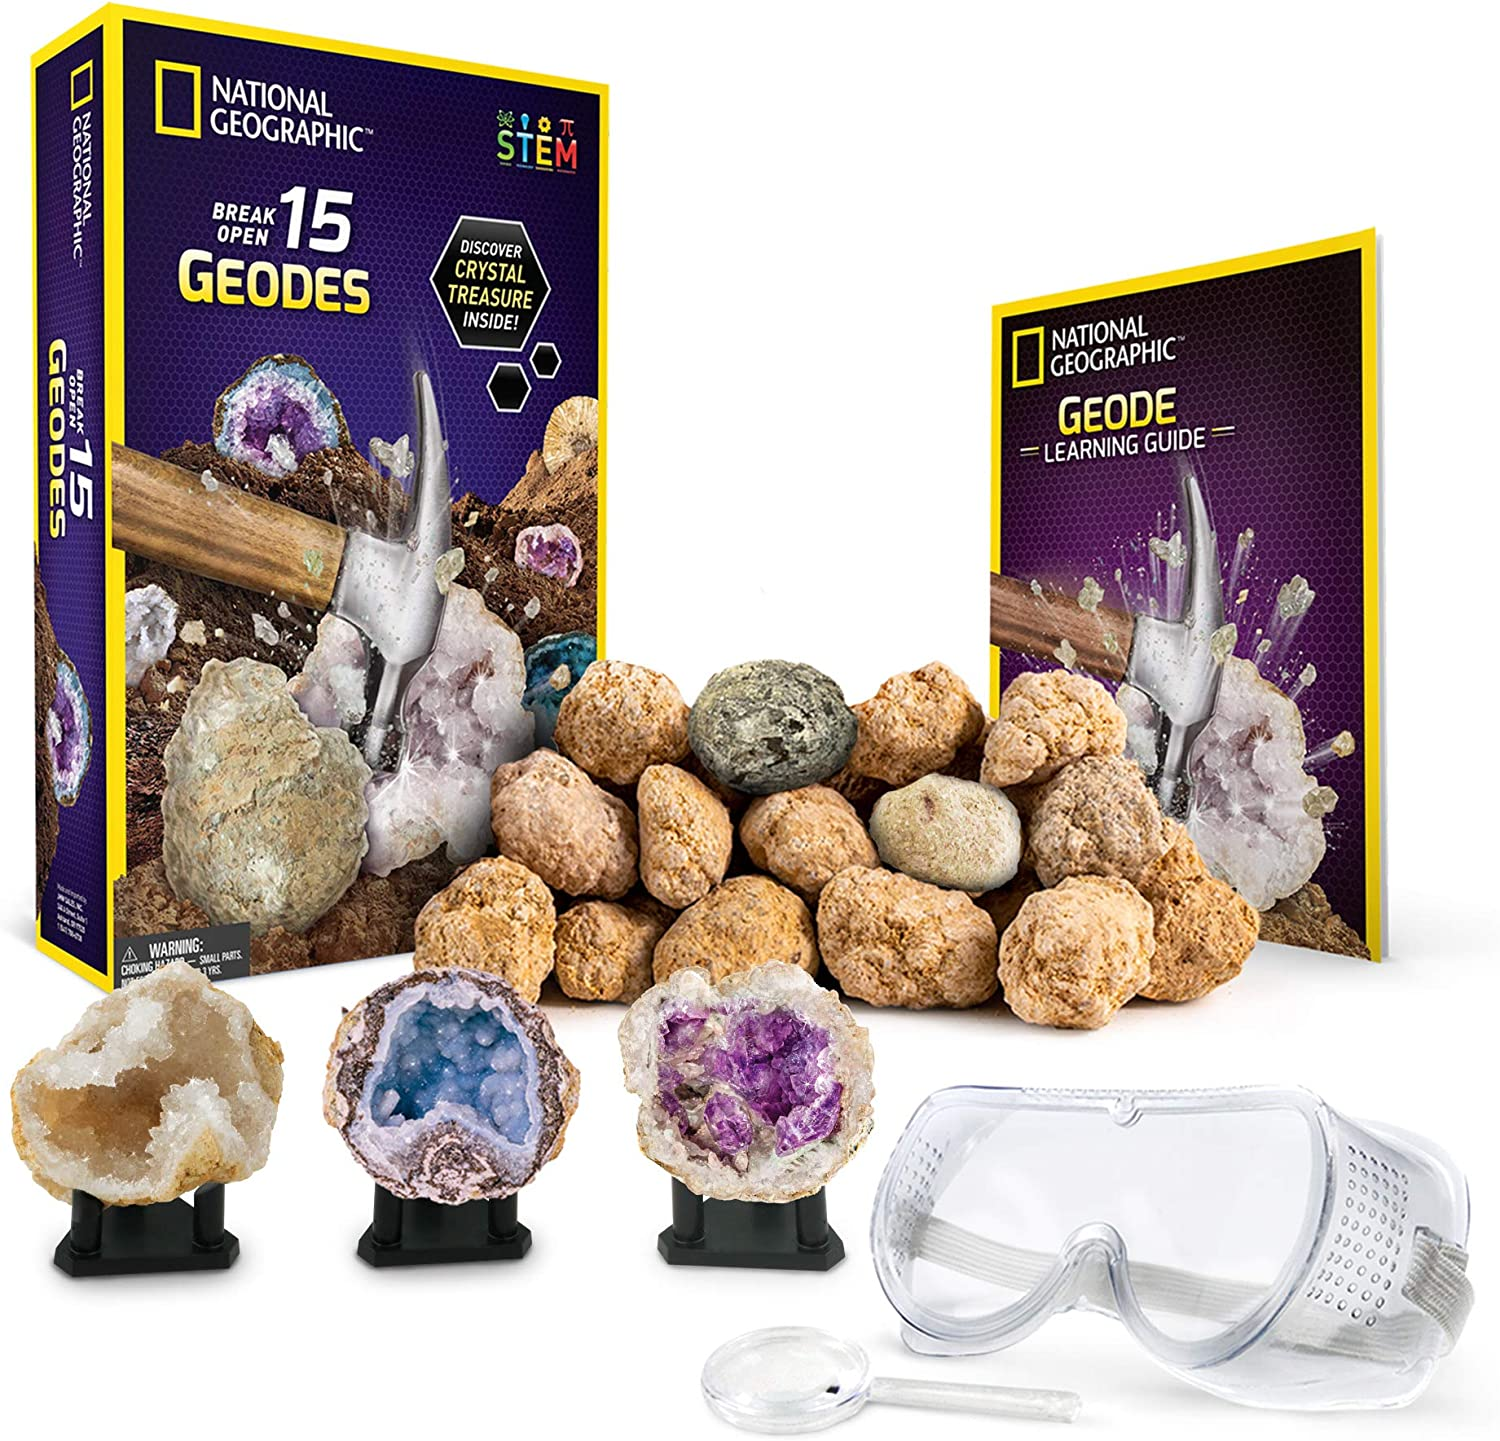 NATIONAL GEOGRAPHIC - Break Open 15 Premium Geodes – Includes Goggles, Detailed Learning Guide & 3 Display Stands - Great Stem Science Gift for Mineralogy & Geology Enthusiasts of Any Age